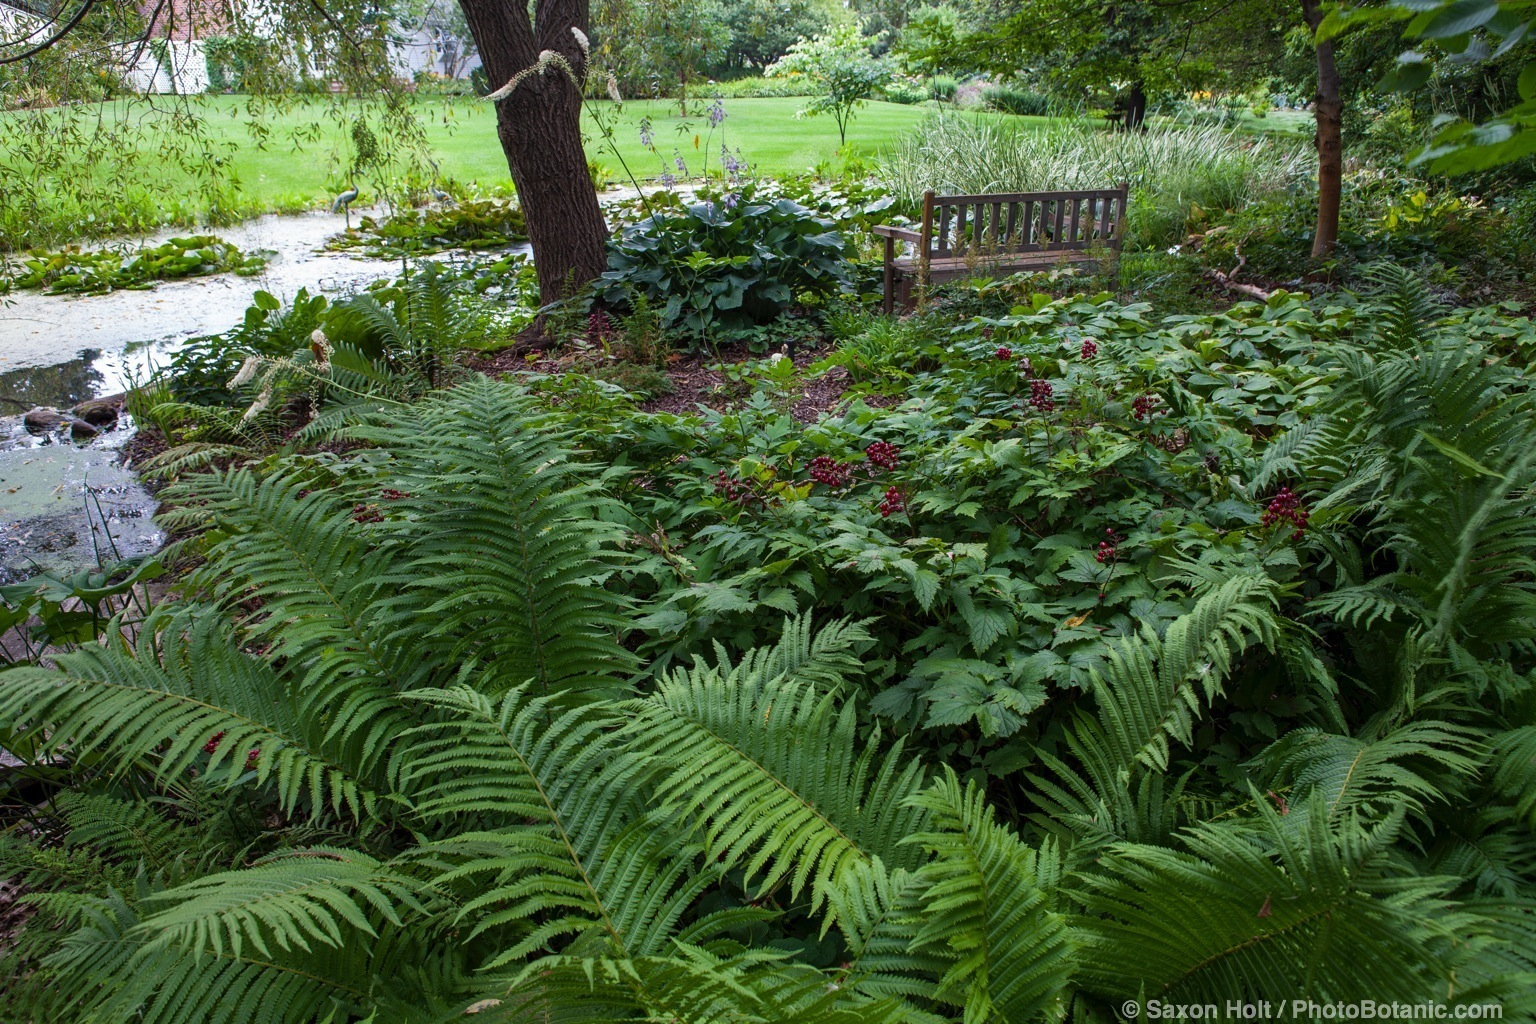 Shady groundcovers with ferns behind bench and stream in Minnesota garden